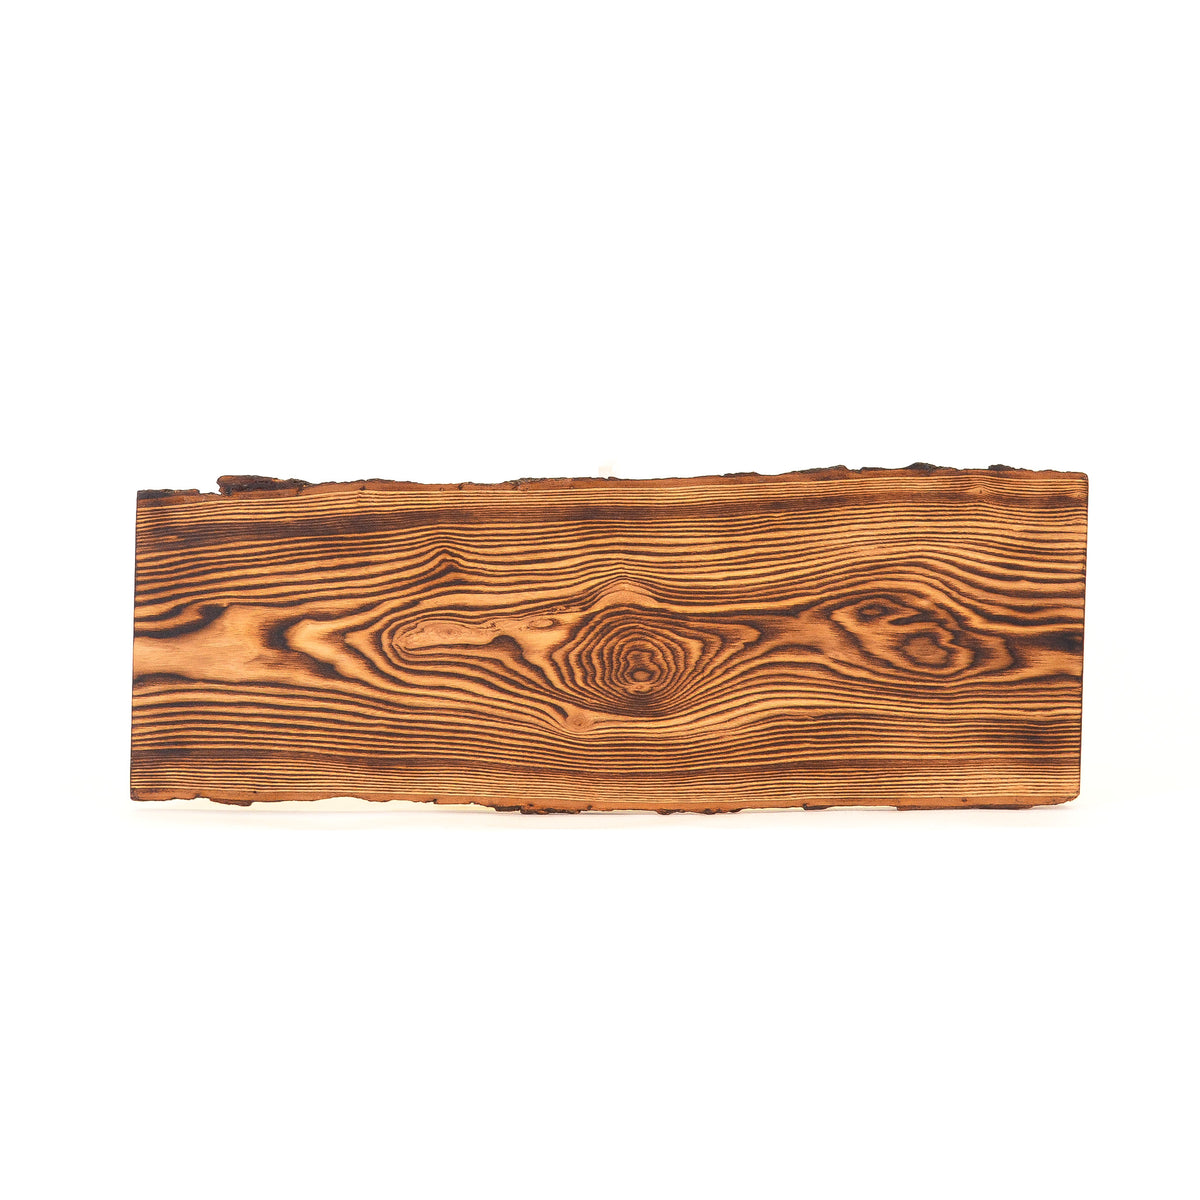 Ash - Flame Torched Serving Board - Bark On